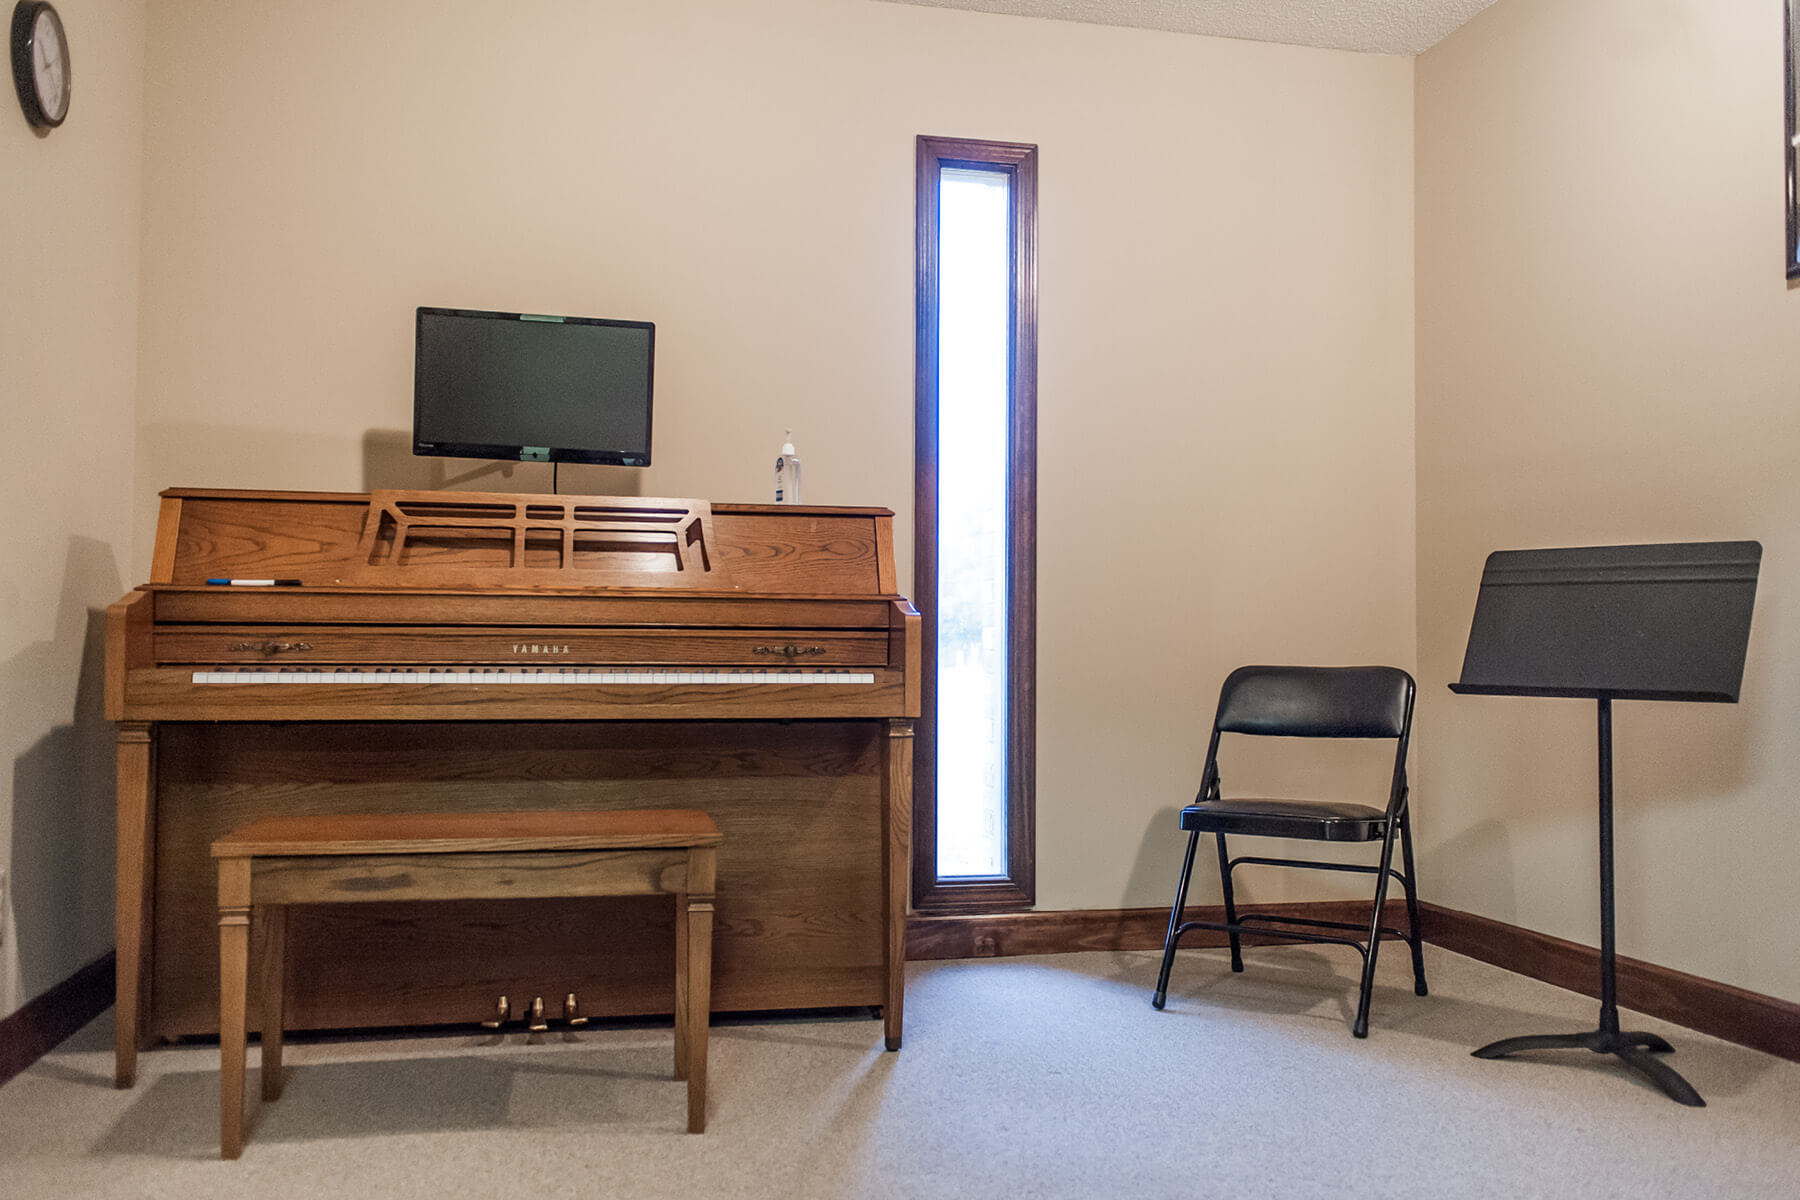 Standing piano lesson room.